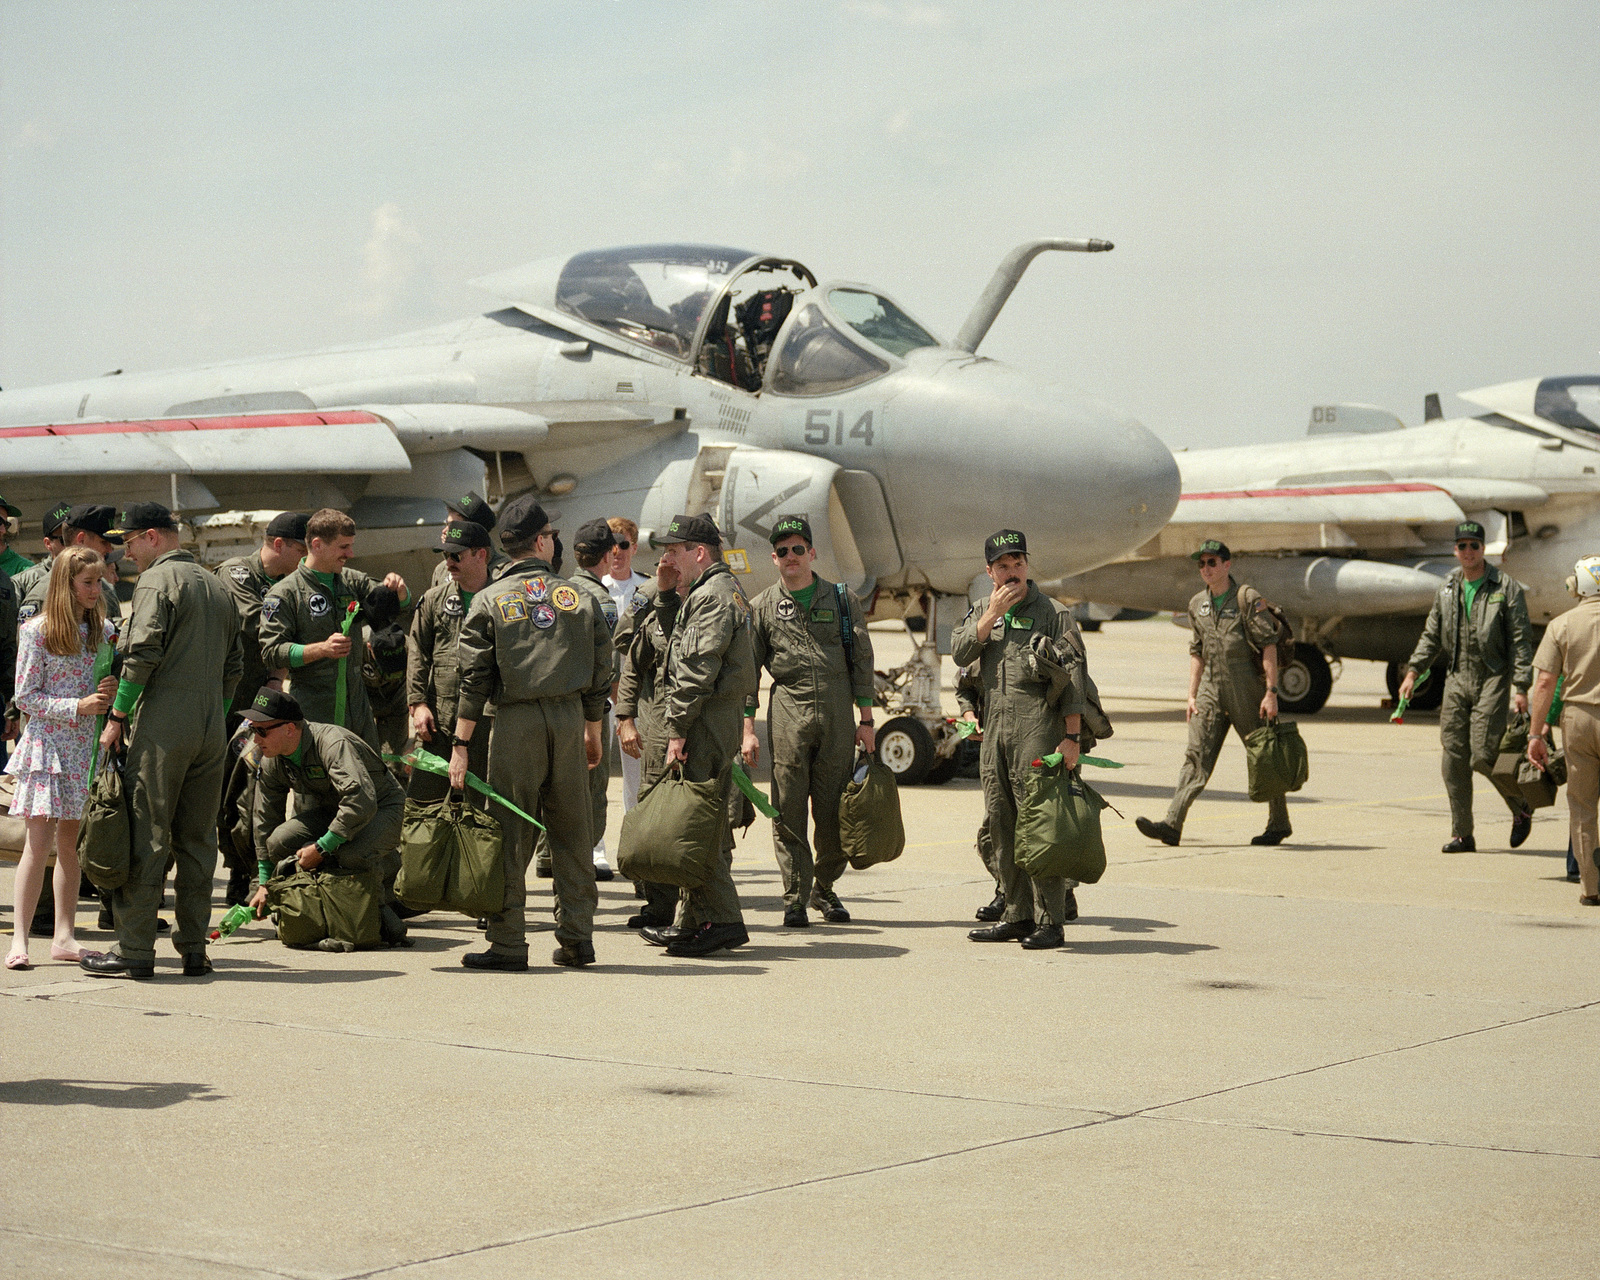 Pilots from Carrier Air Wing 1 (CVW-1) walk past an Attack Squadron 85 (VA-85) A-6E Intruder aircraft on the flight line after returning home from deployment in the Persian Gulf area. CVW-1 was stationed aboard the aircraft carrier USS AMERICA (CV 66) while serving during Operations DESERT SHIELD/DESERT STORM